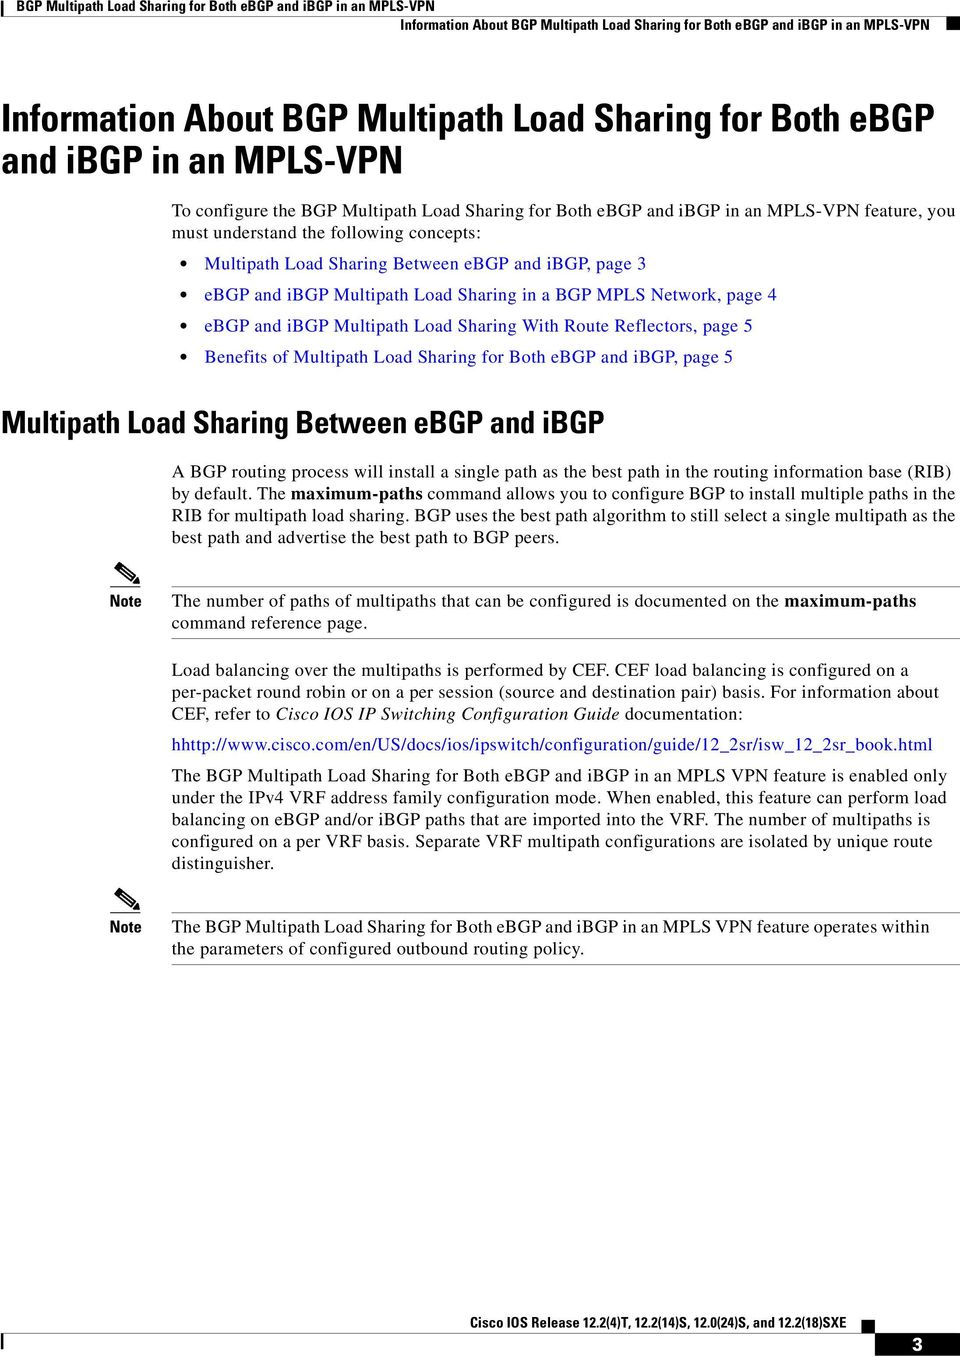 BGP MPLS Network, page 4 ebgp and ibgp Multipath Load Sharing With Route Reflectors, page 5 Benefits of Multipath Load Sharing for Both ebgp and ibgp, page 5 Multipath Load Sharing Between ebgp and